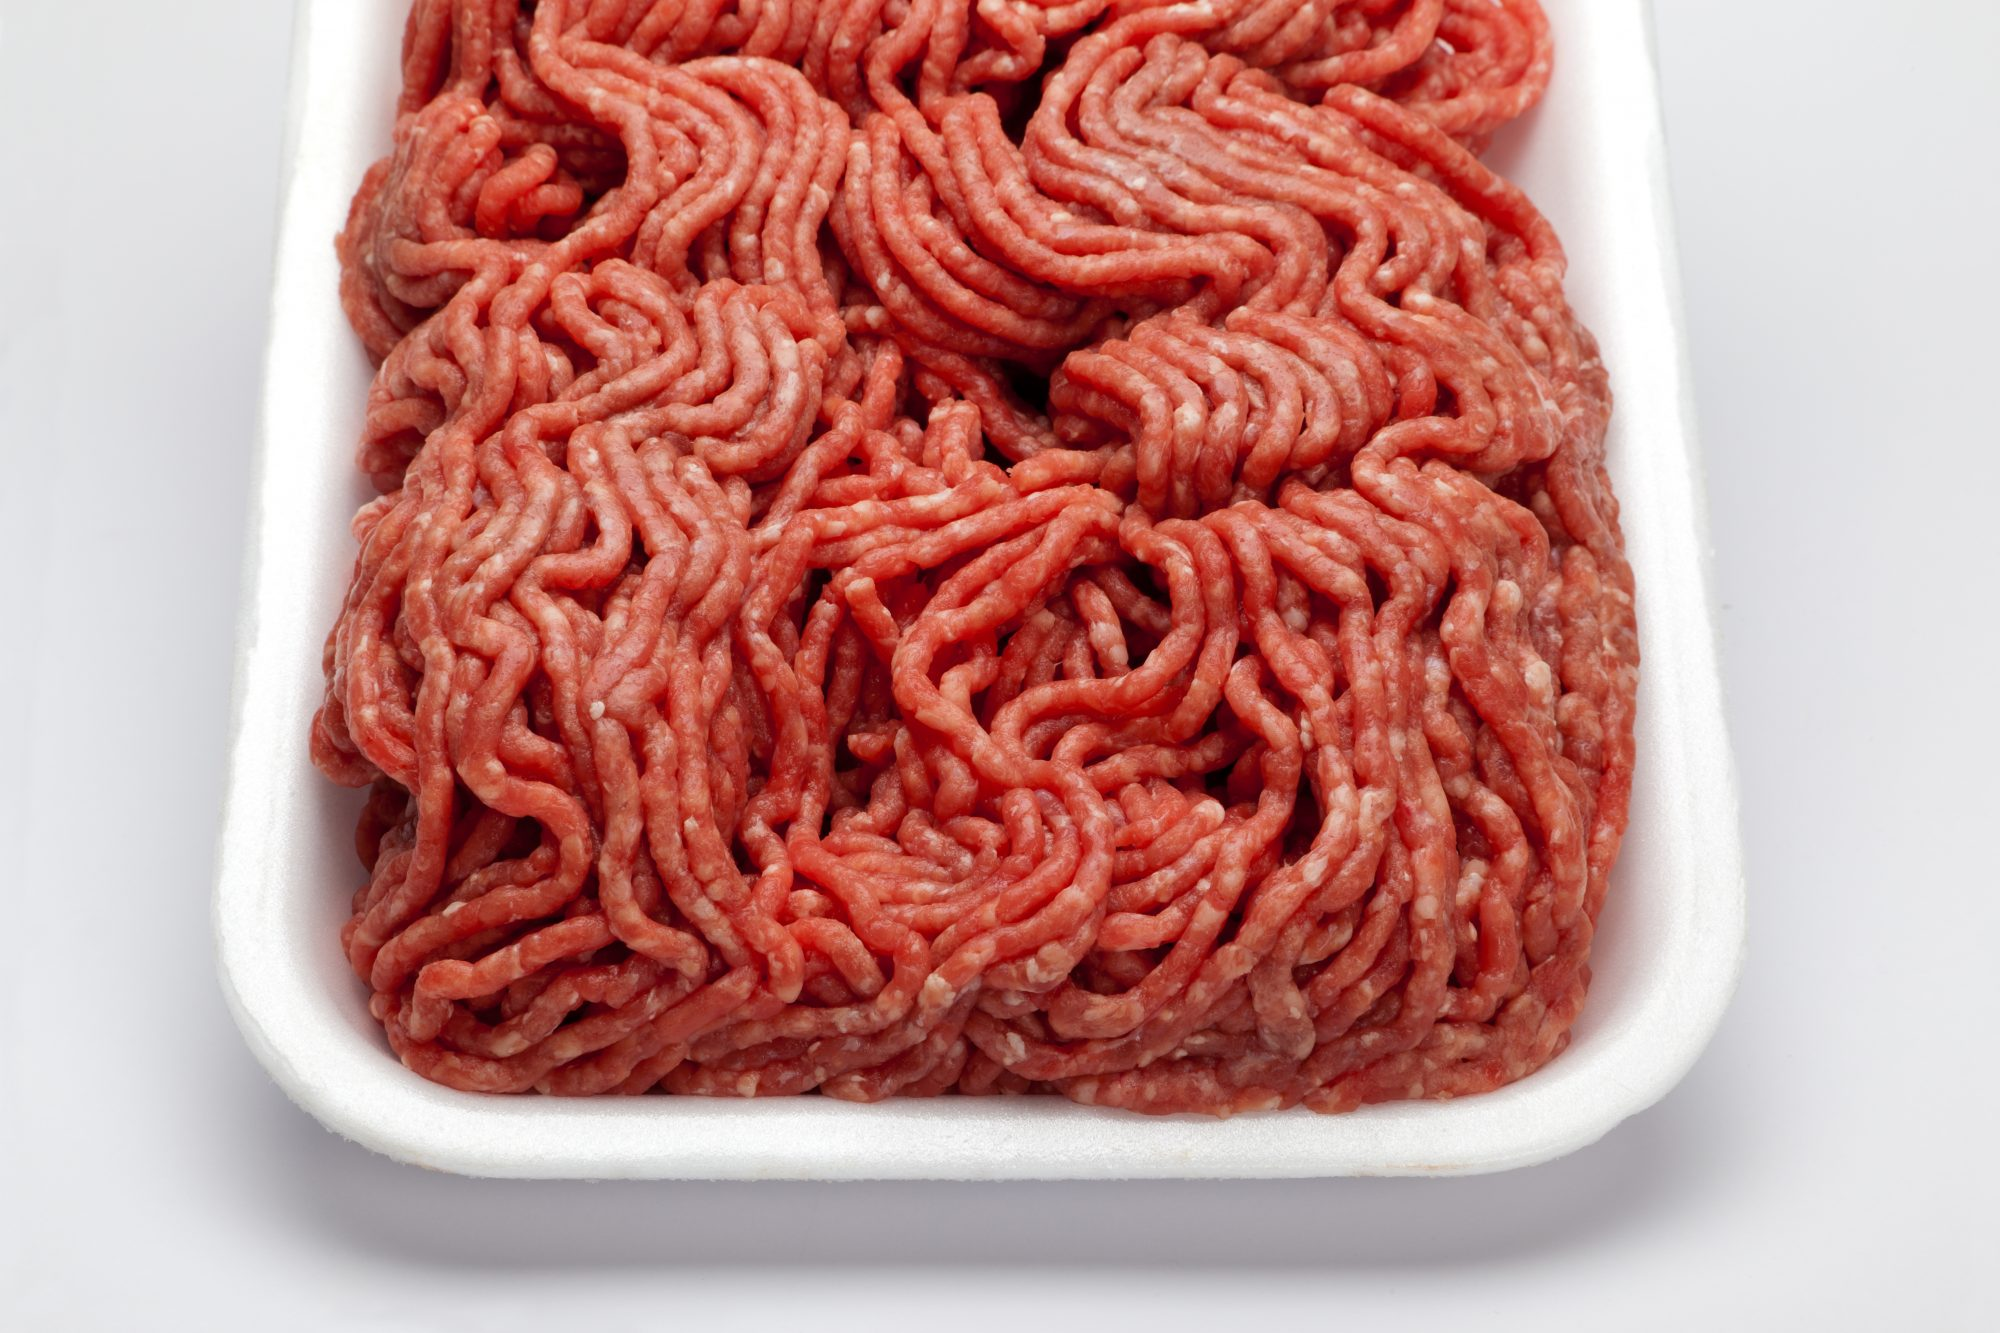 The USDA Announced a Massive Recall on Raw Beef—Here's How to Know If You Bought a Bad Batch